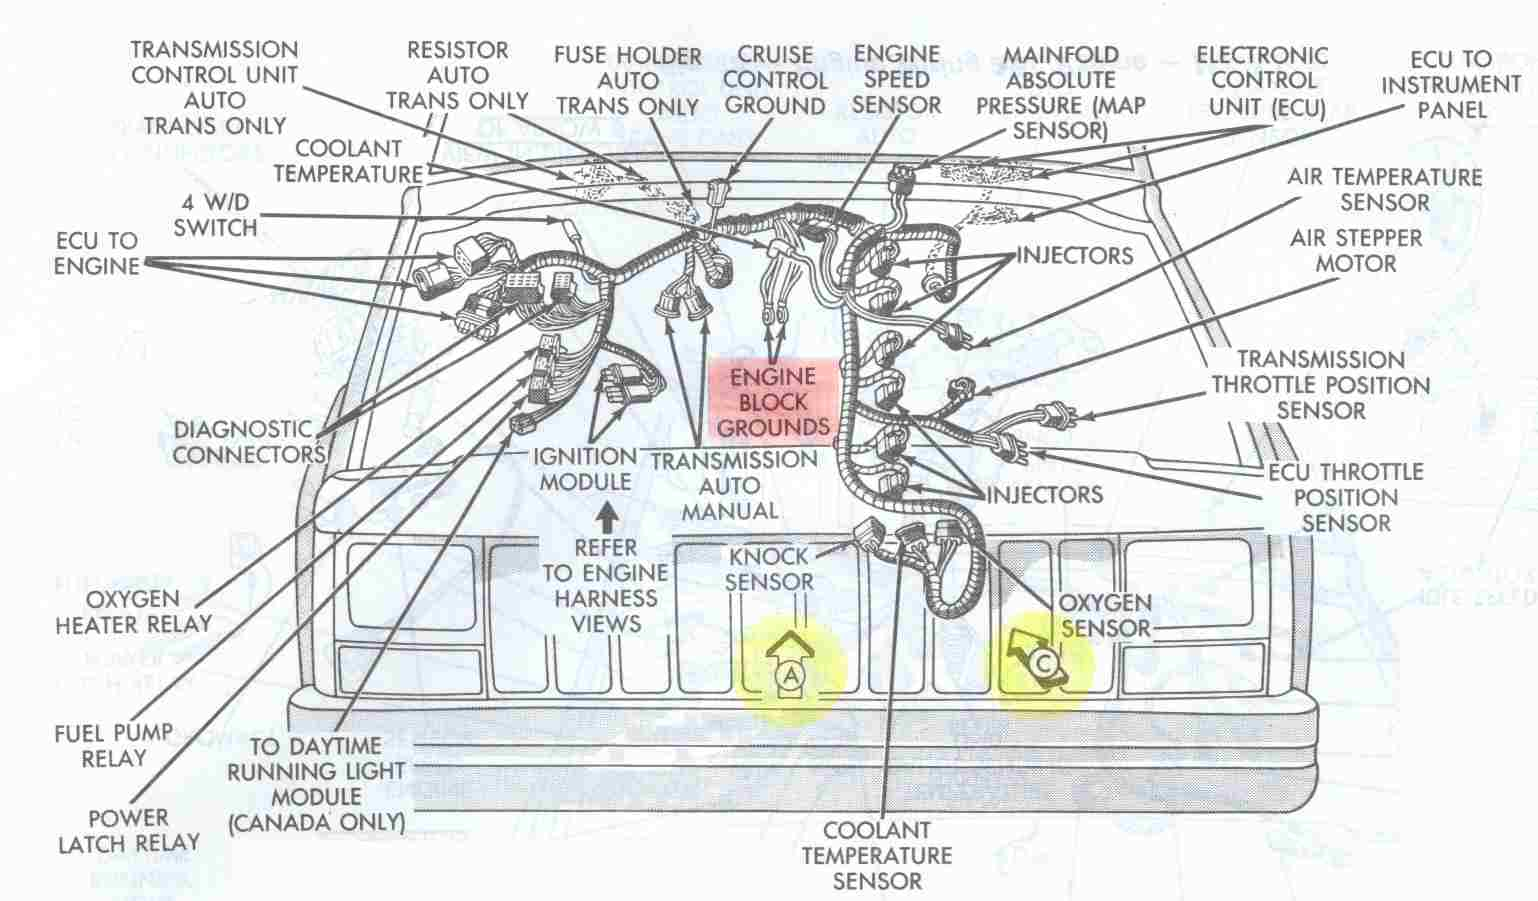 Electrical_Engine_Ground_Points_Overview jeep cherokee electrical diagnosing erratic behavior of engine 2007 Jeep Wrangler Wiring Diagram at metegol.co